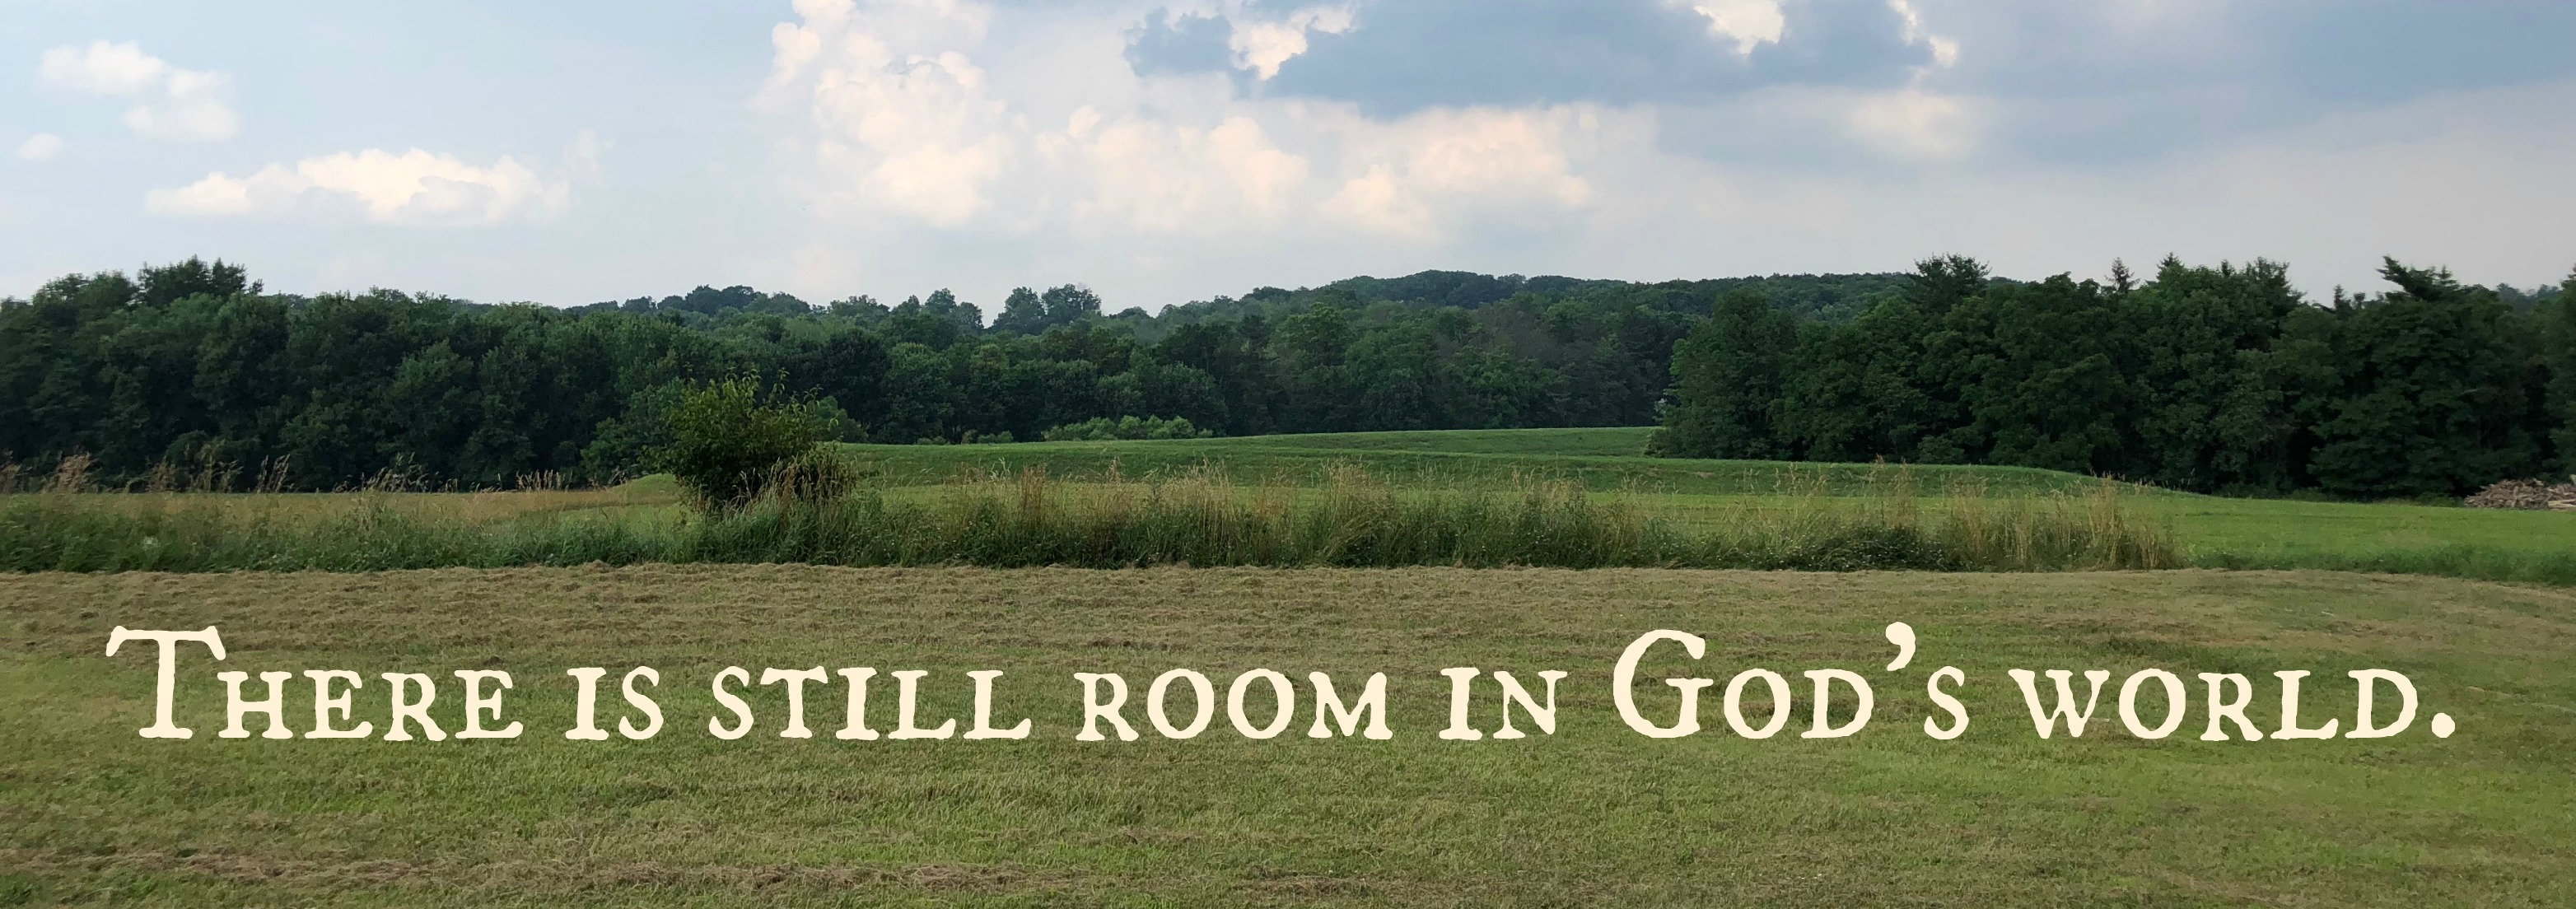 Still Room in God's World